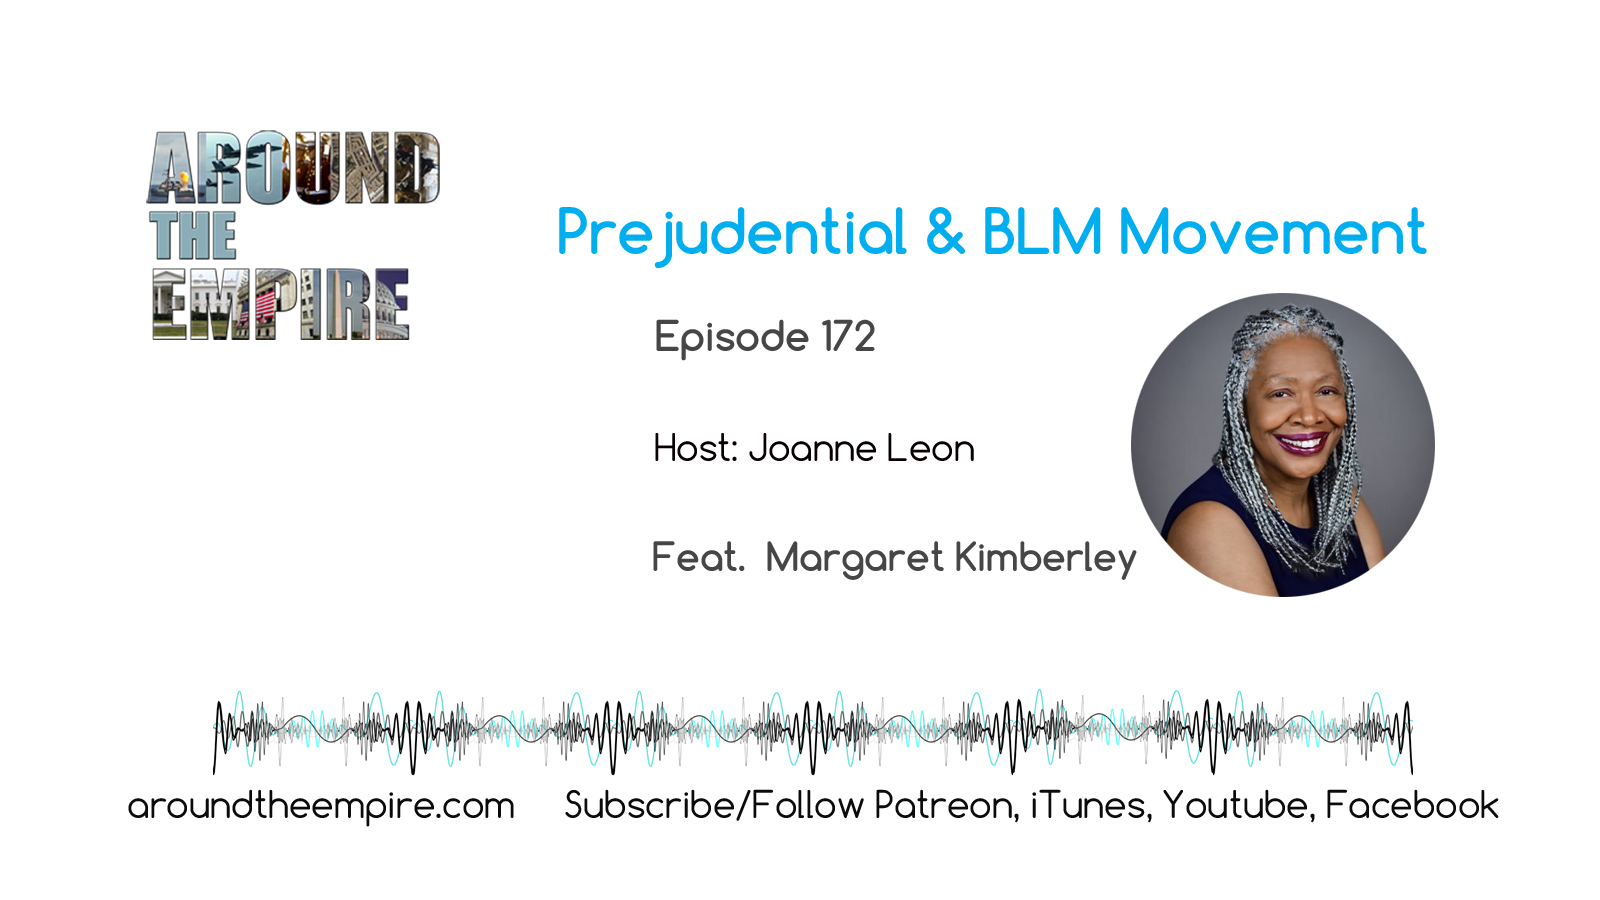 Ep 172 Prejudential and BLM feat Margaret Kimberley